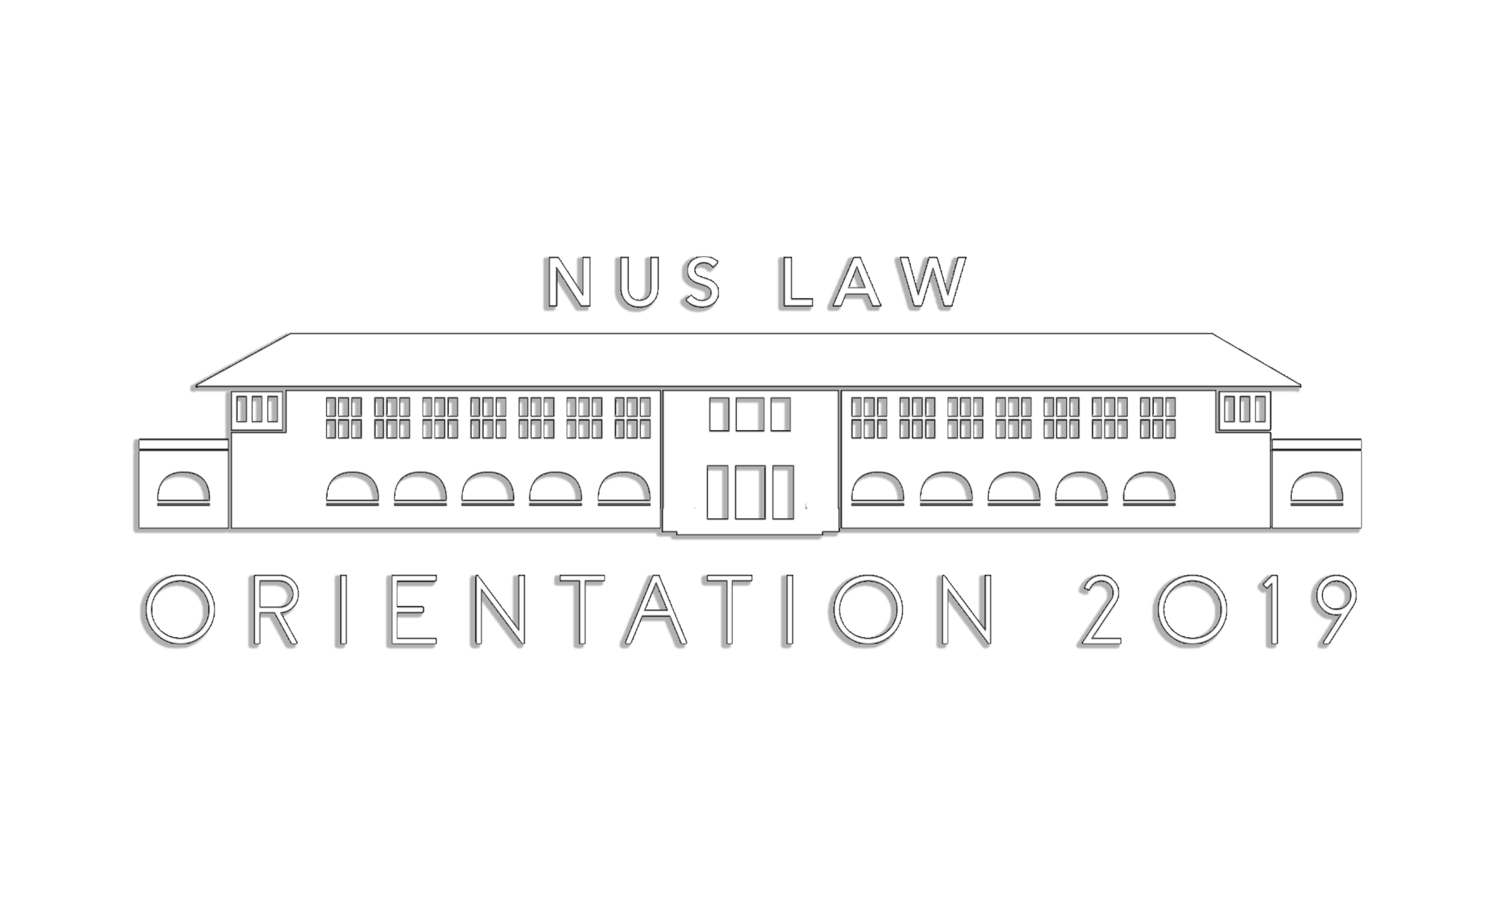 NUS LAW ORIENTATION